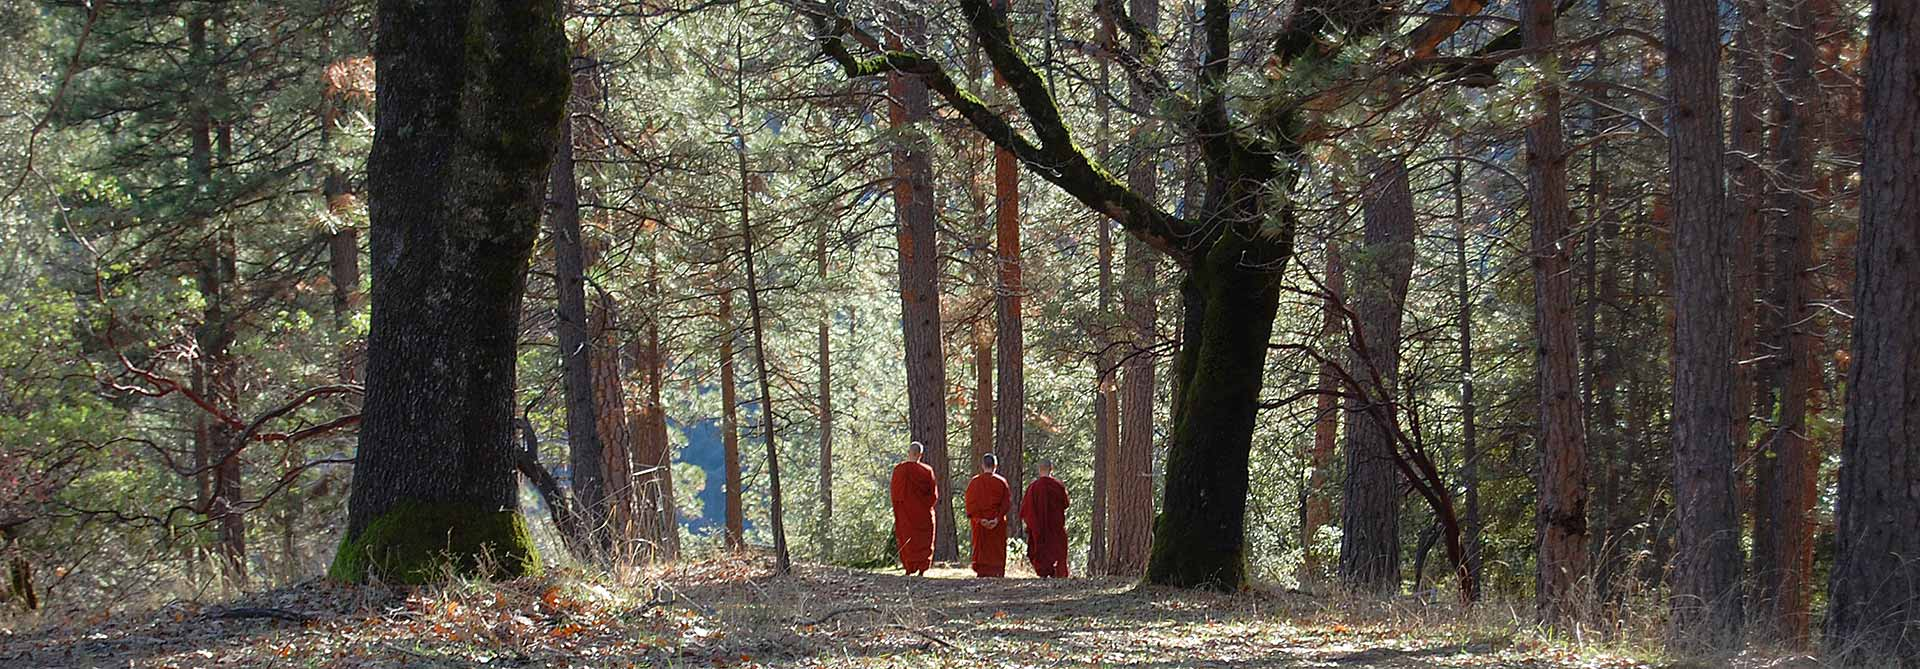 Aloka Vihara Forest Monastery-nuns walking together